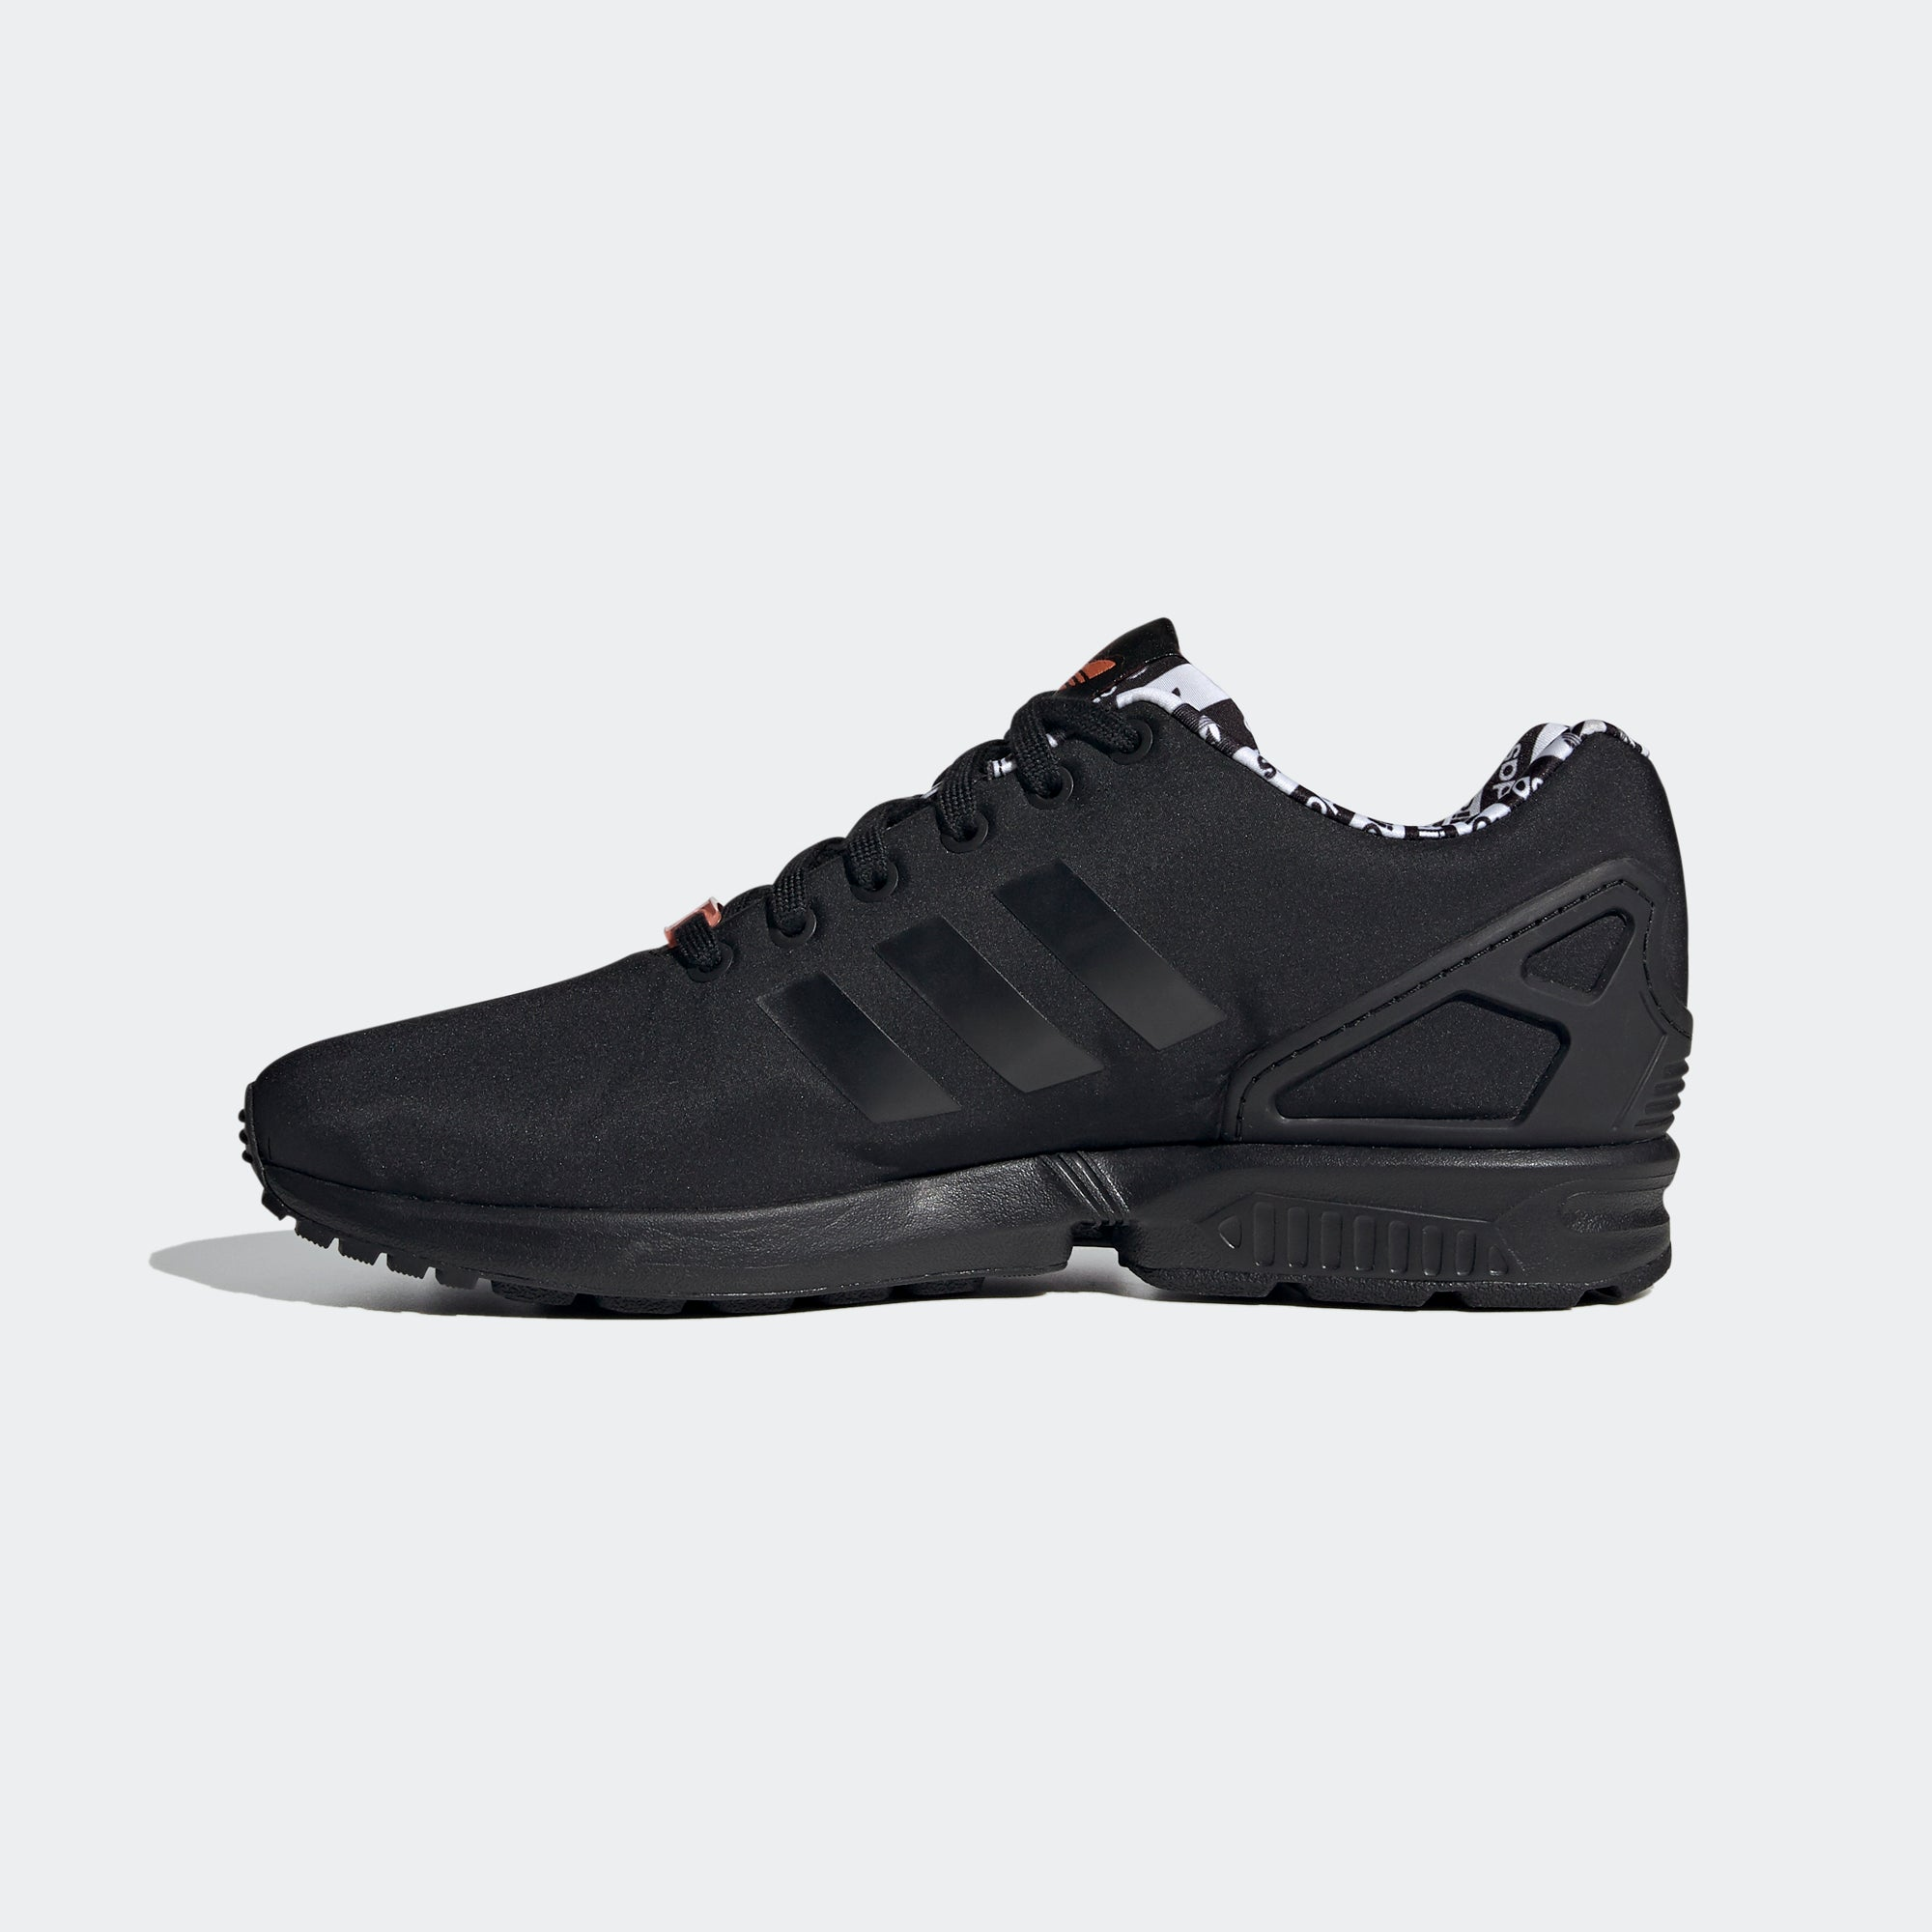 adidas ZX Flux Shoes Black   Chicago